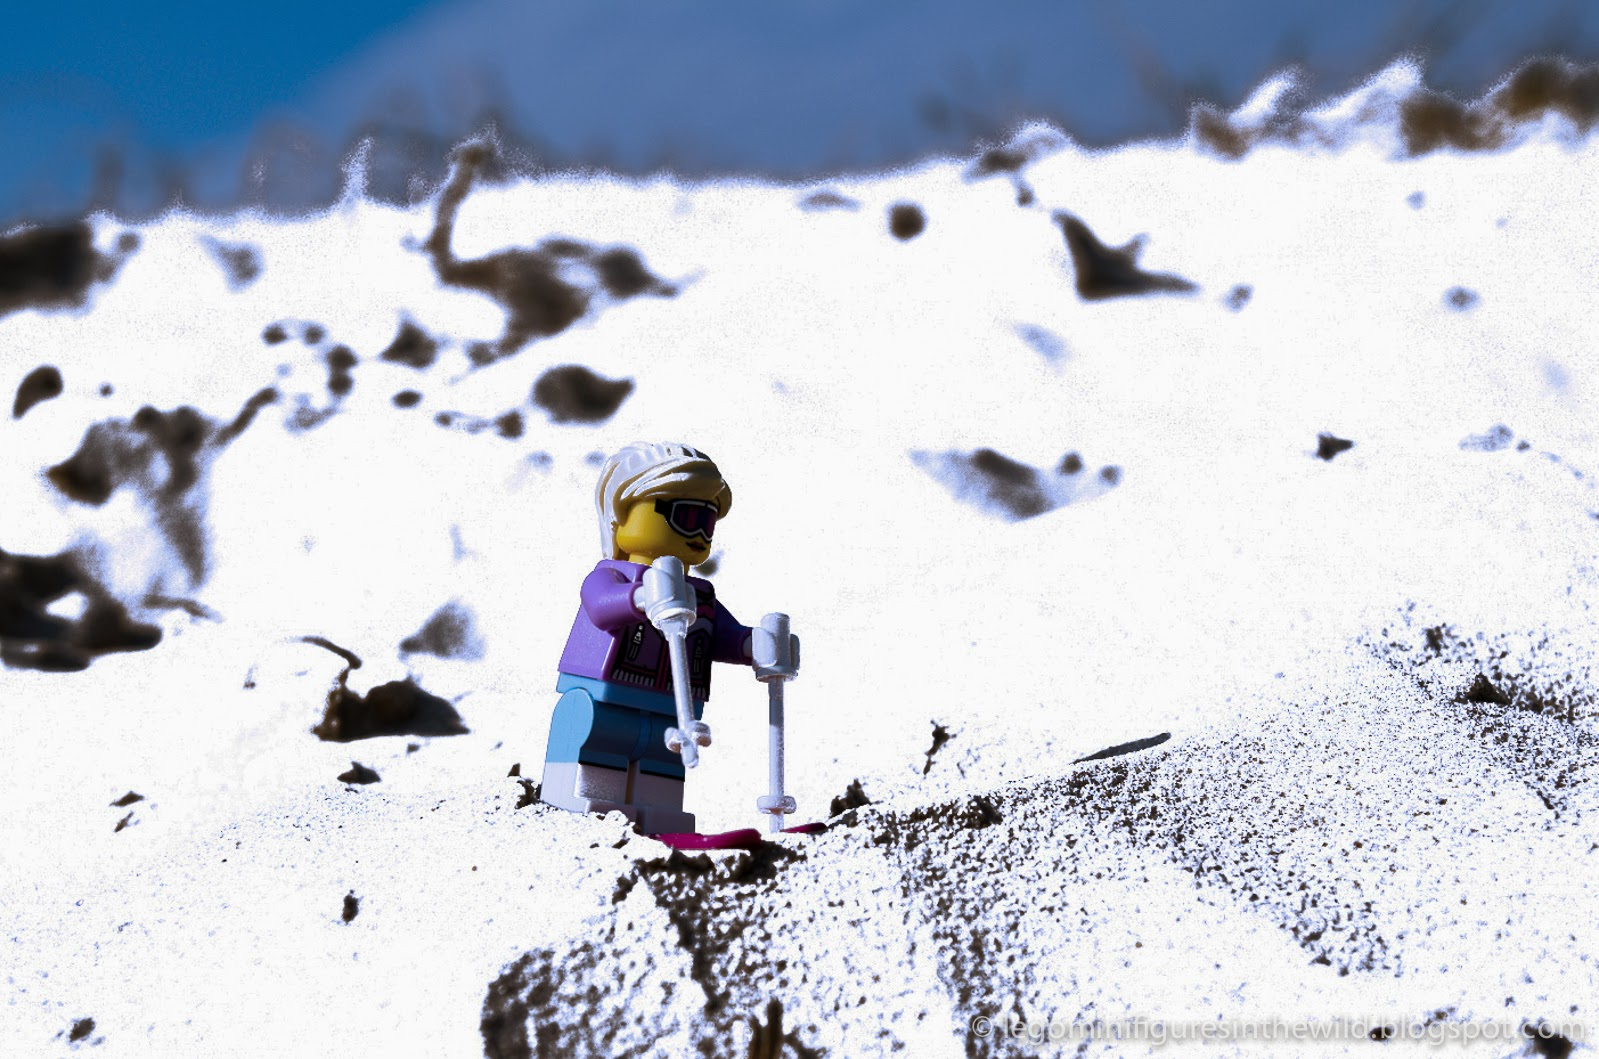 Lego Minifigures Series 8 Downhill Skier - Wallpaper